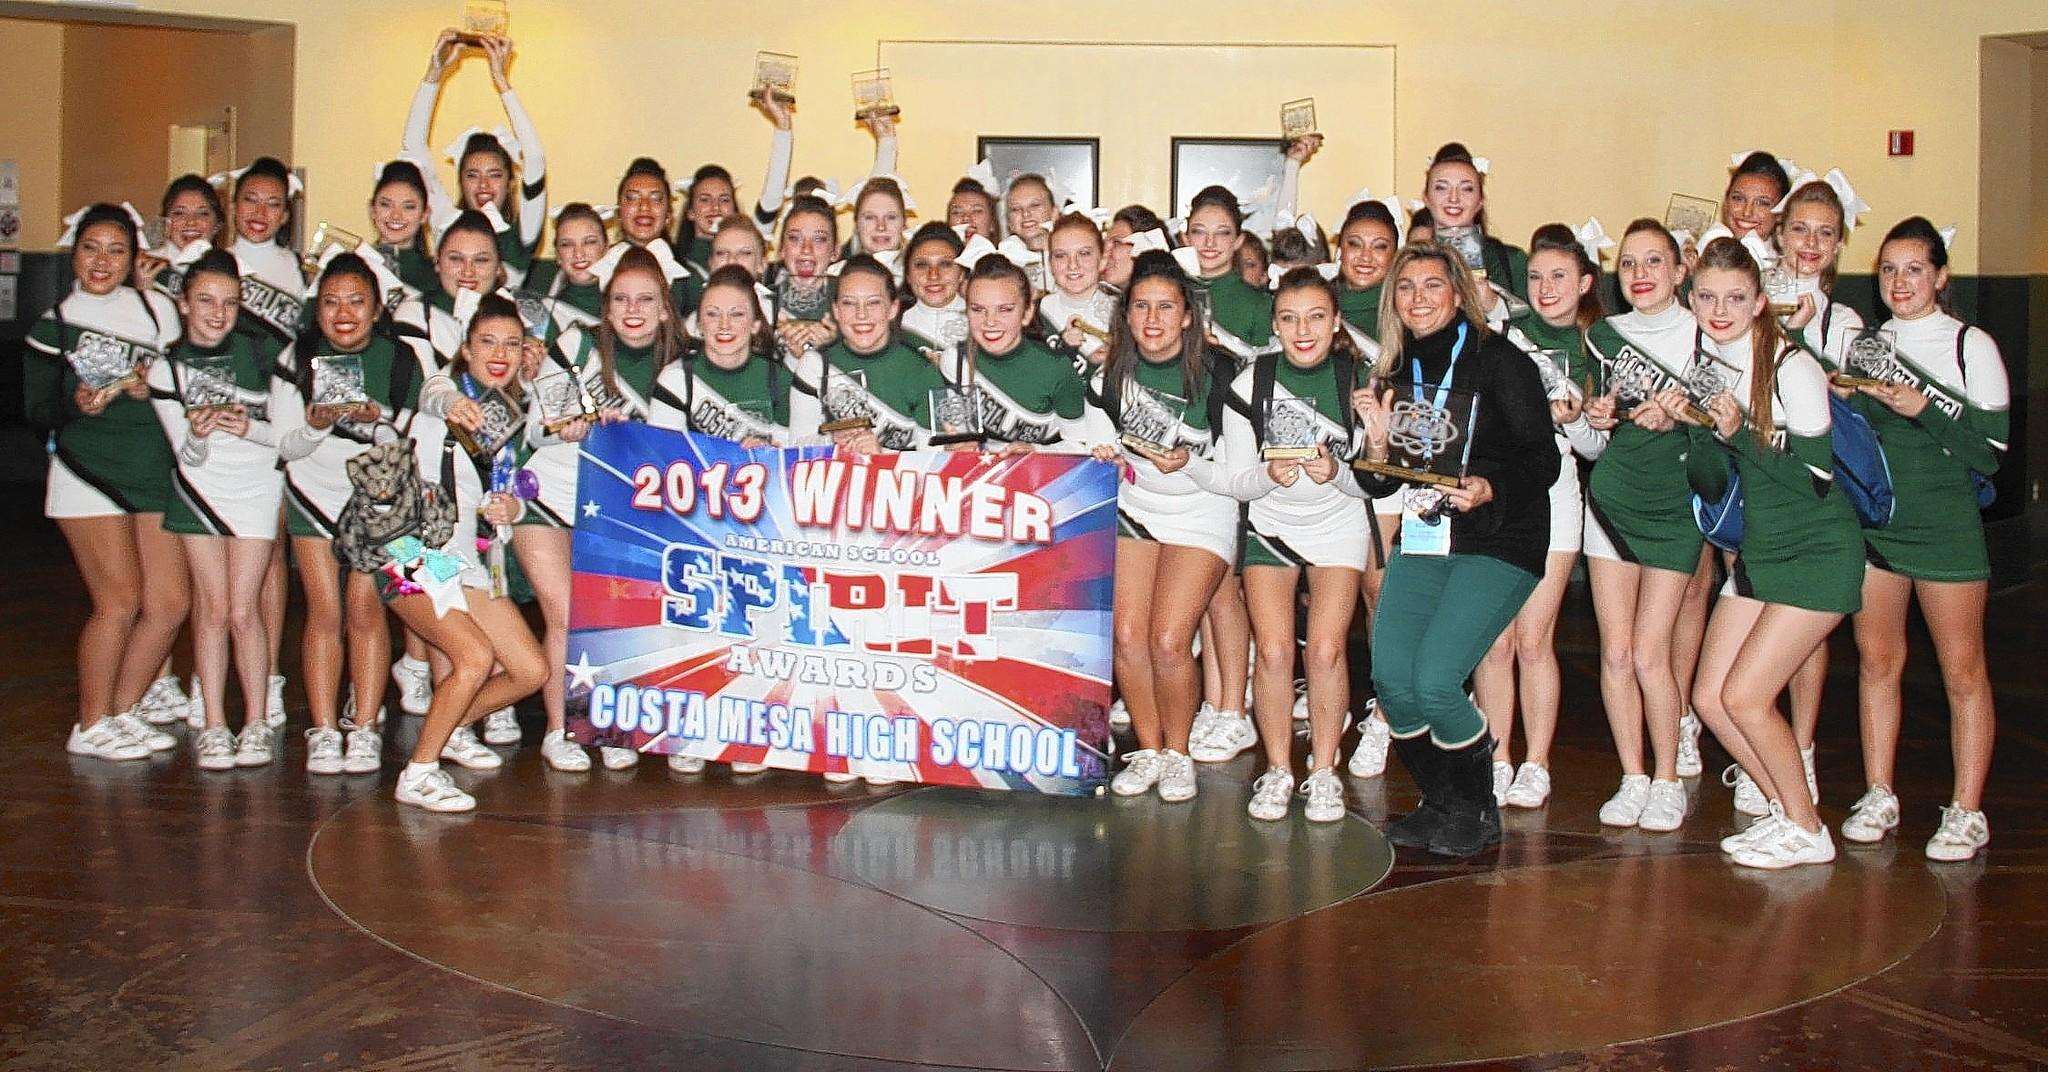 Costa Mesa High School cheerleaders pose for a photo after winning the American School Spirit Award at Nationals in Florida last week.